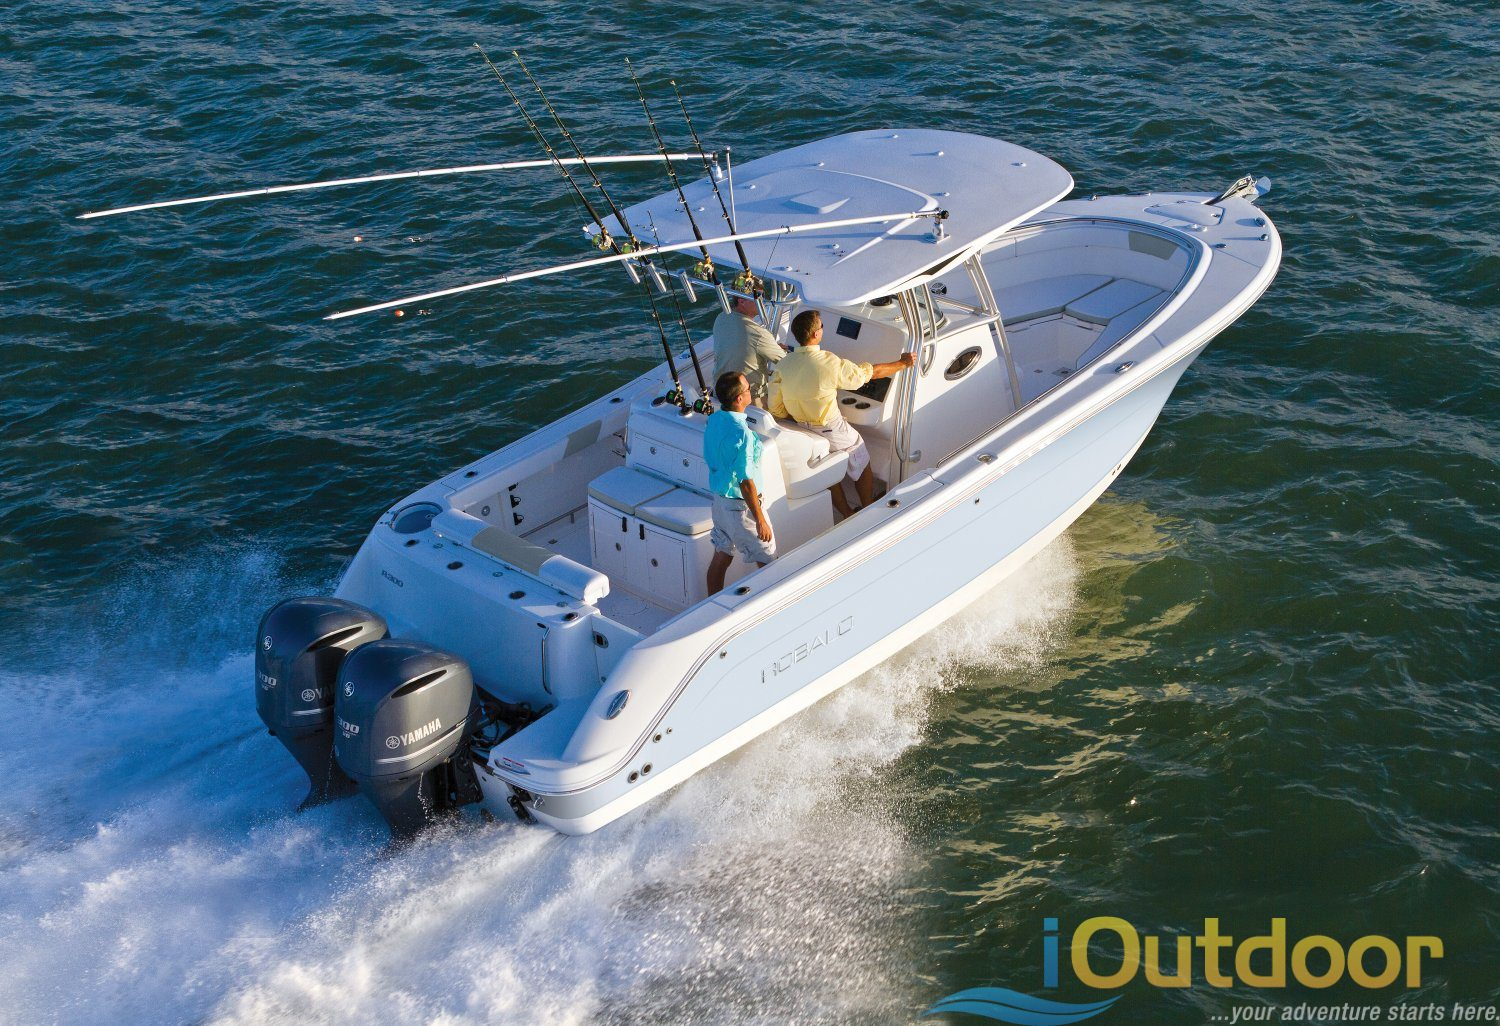 Boat charters ft lauderdale fl ioutdoor fishing adventures for Fishing boat rentals